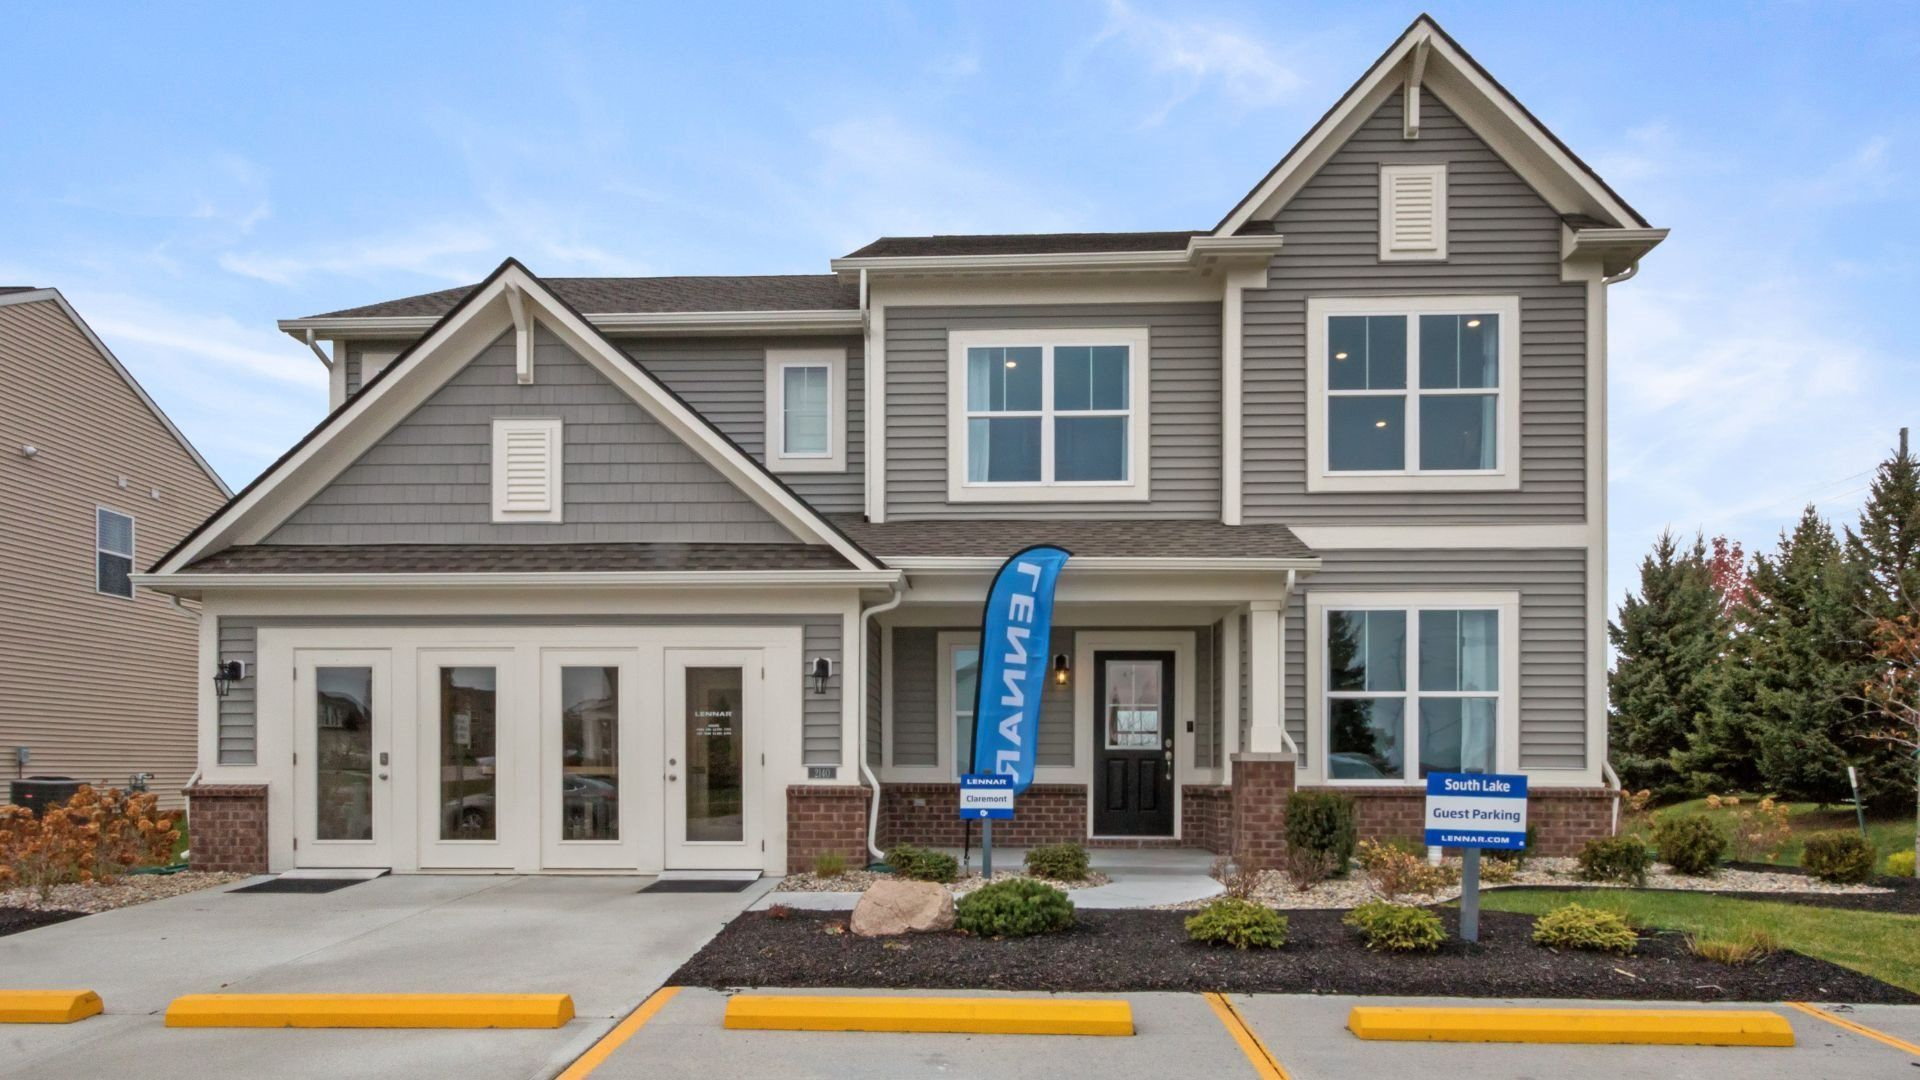 New Homes for sale in Greenwood, IN by Lennar Homes